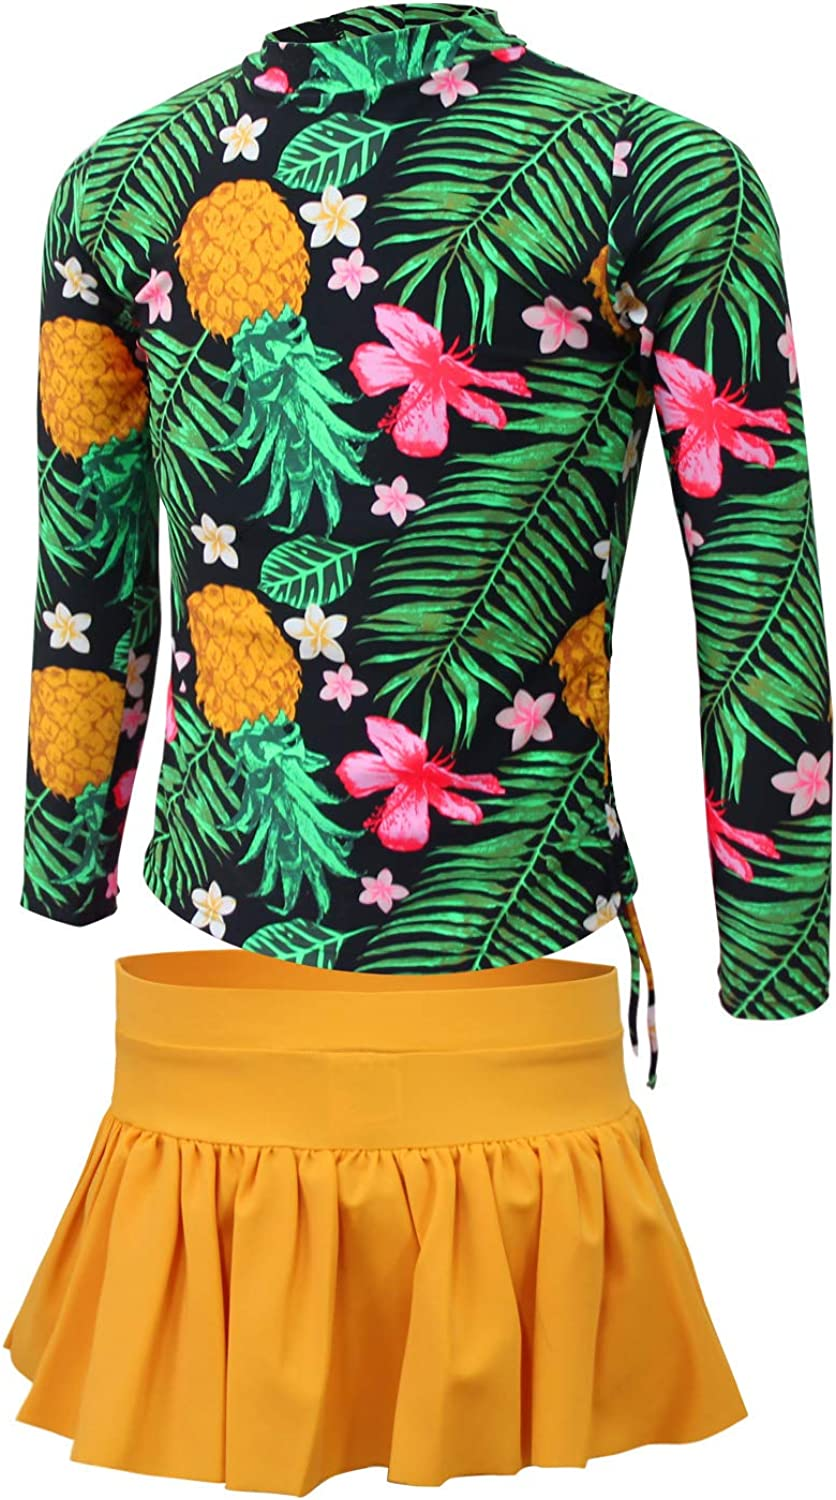 Uhnice Girls Floral Two Piece Swimsuit Long Sleeve Rash Guards Swim Shirt with Hats